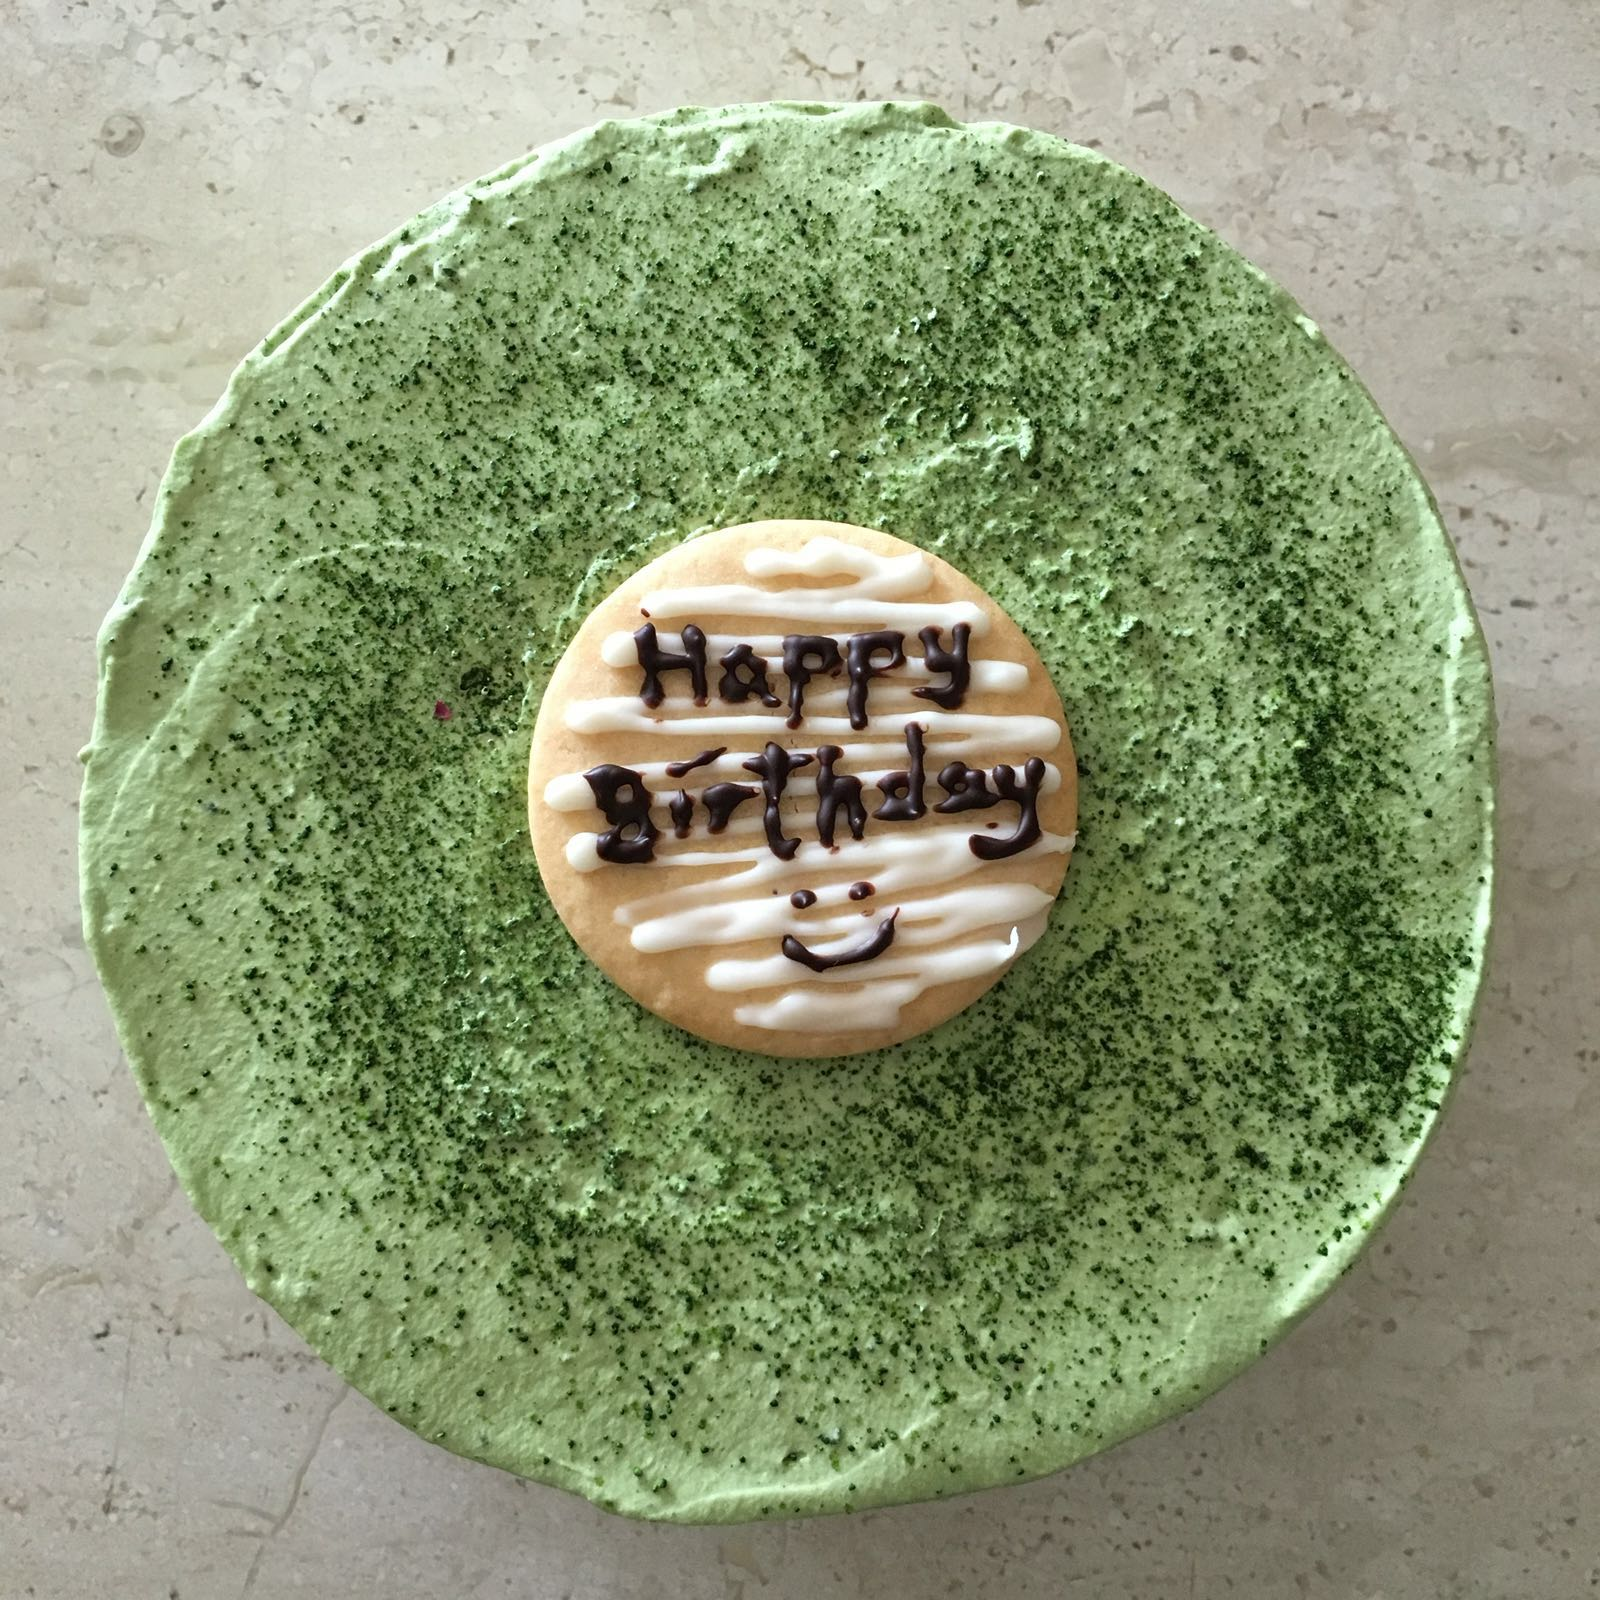 Matchazuki   Matcha chiffon cake with matcha-infused cream and azuki red bean bits  $440  + 10% delivery  (7 in., white chocolate sign included)